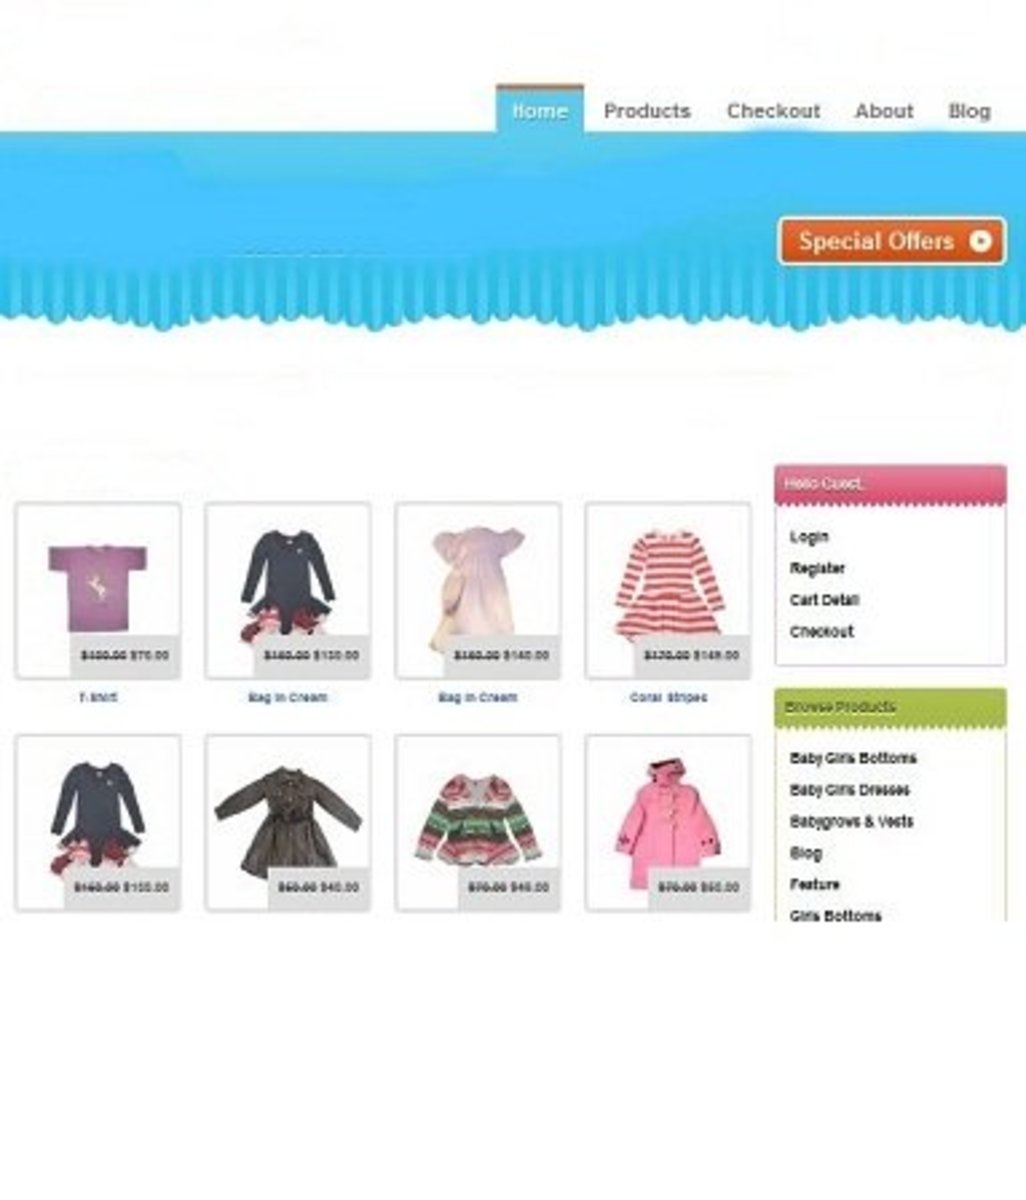 5 Easy Ways to Display Products on a WordPress Online Shop